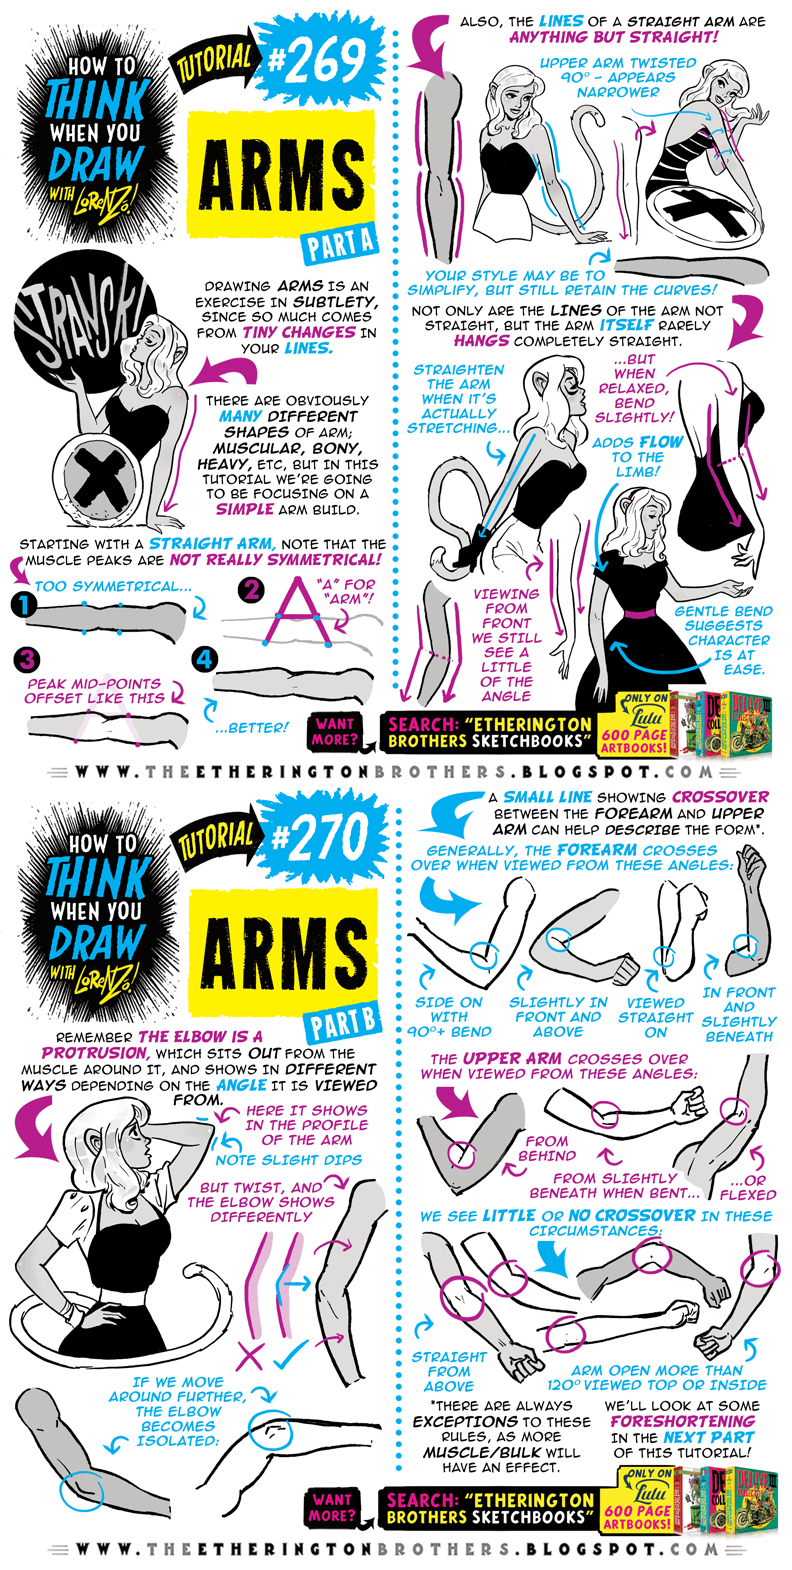 How to THINK when you draw ARMS (1 of 2) tutorial!